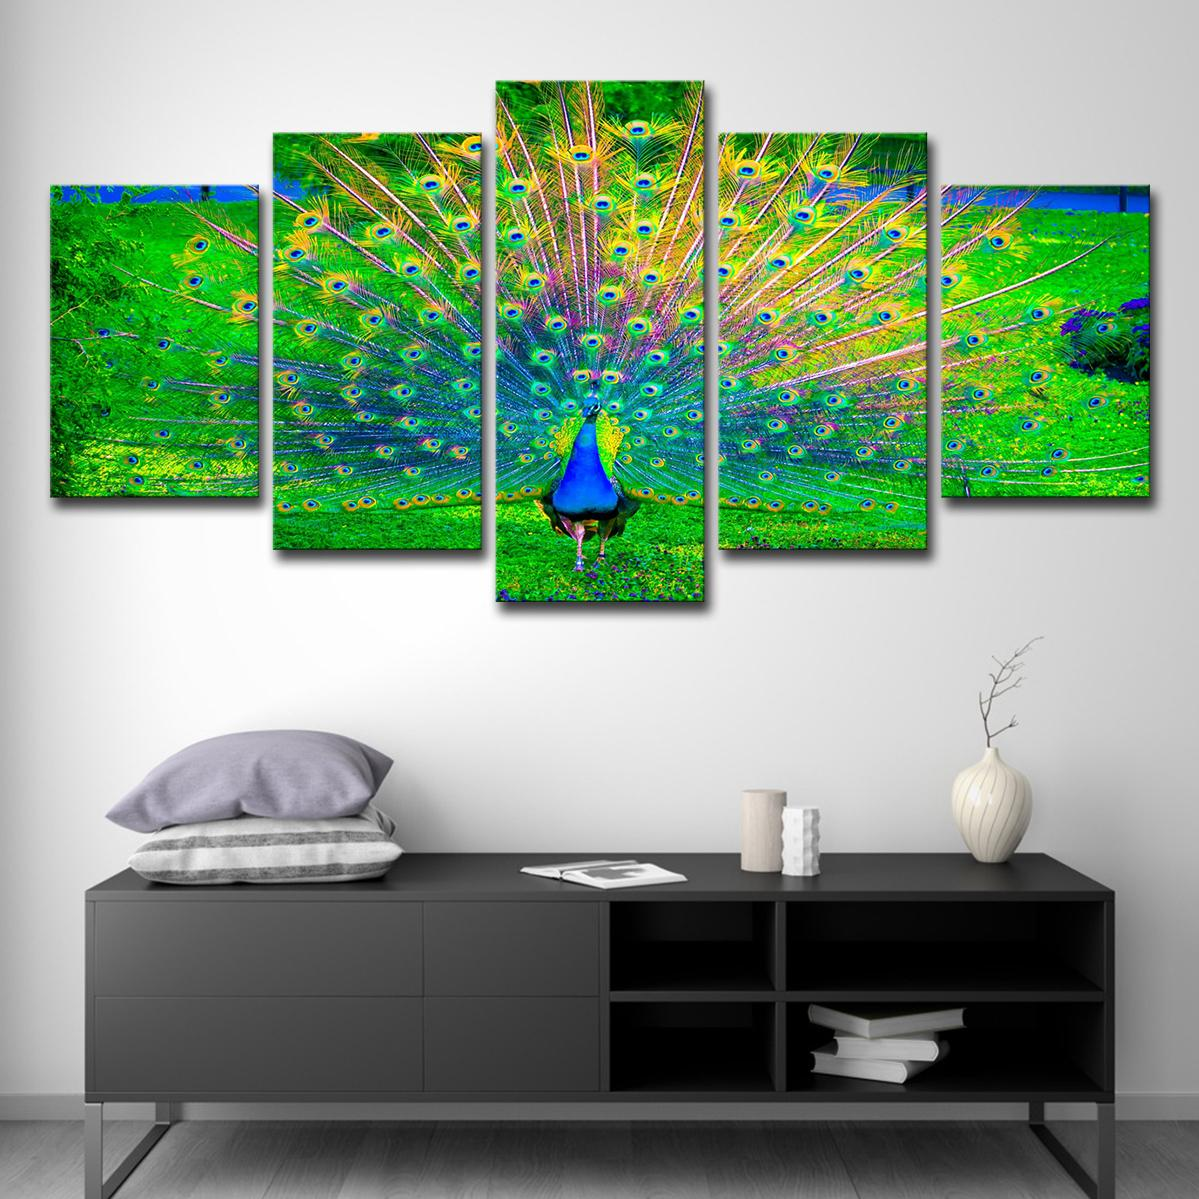 2019 modern home wall art decor frame canvas pictures hd printed peacock open green screen paintings animal posters from xmqh2017 18 49 dhgate com